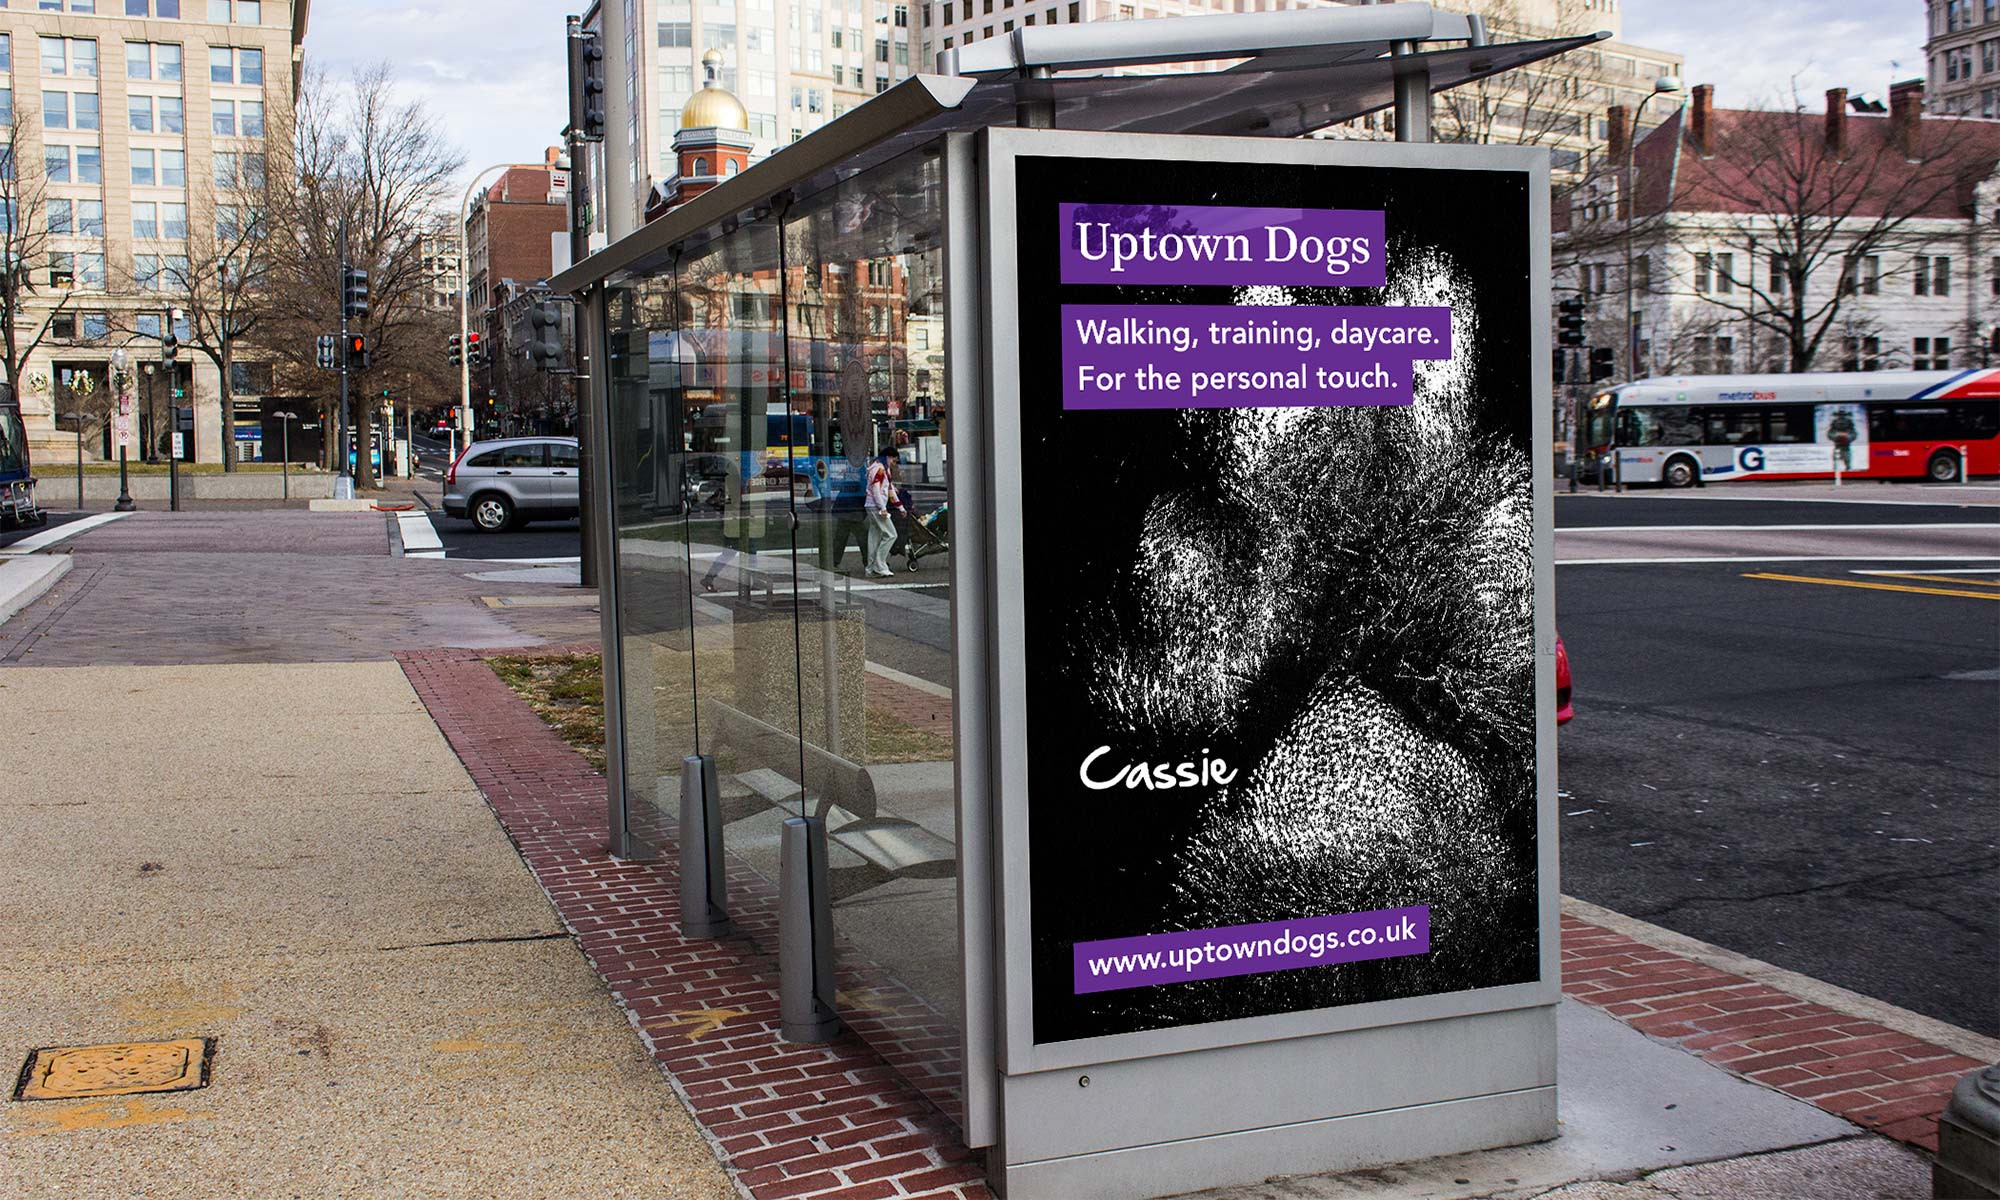 Uptown Dogs bus stop ad